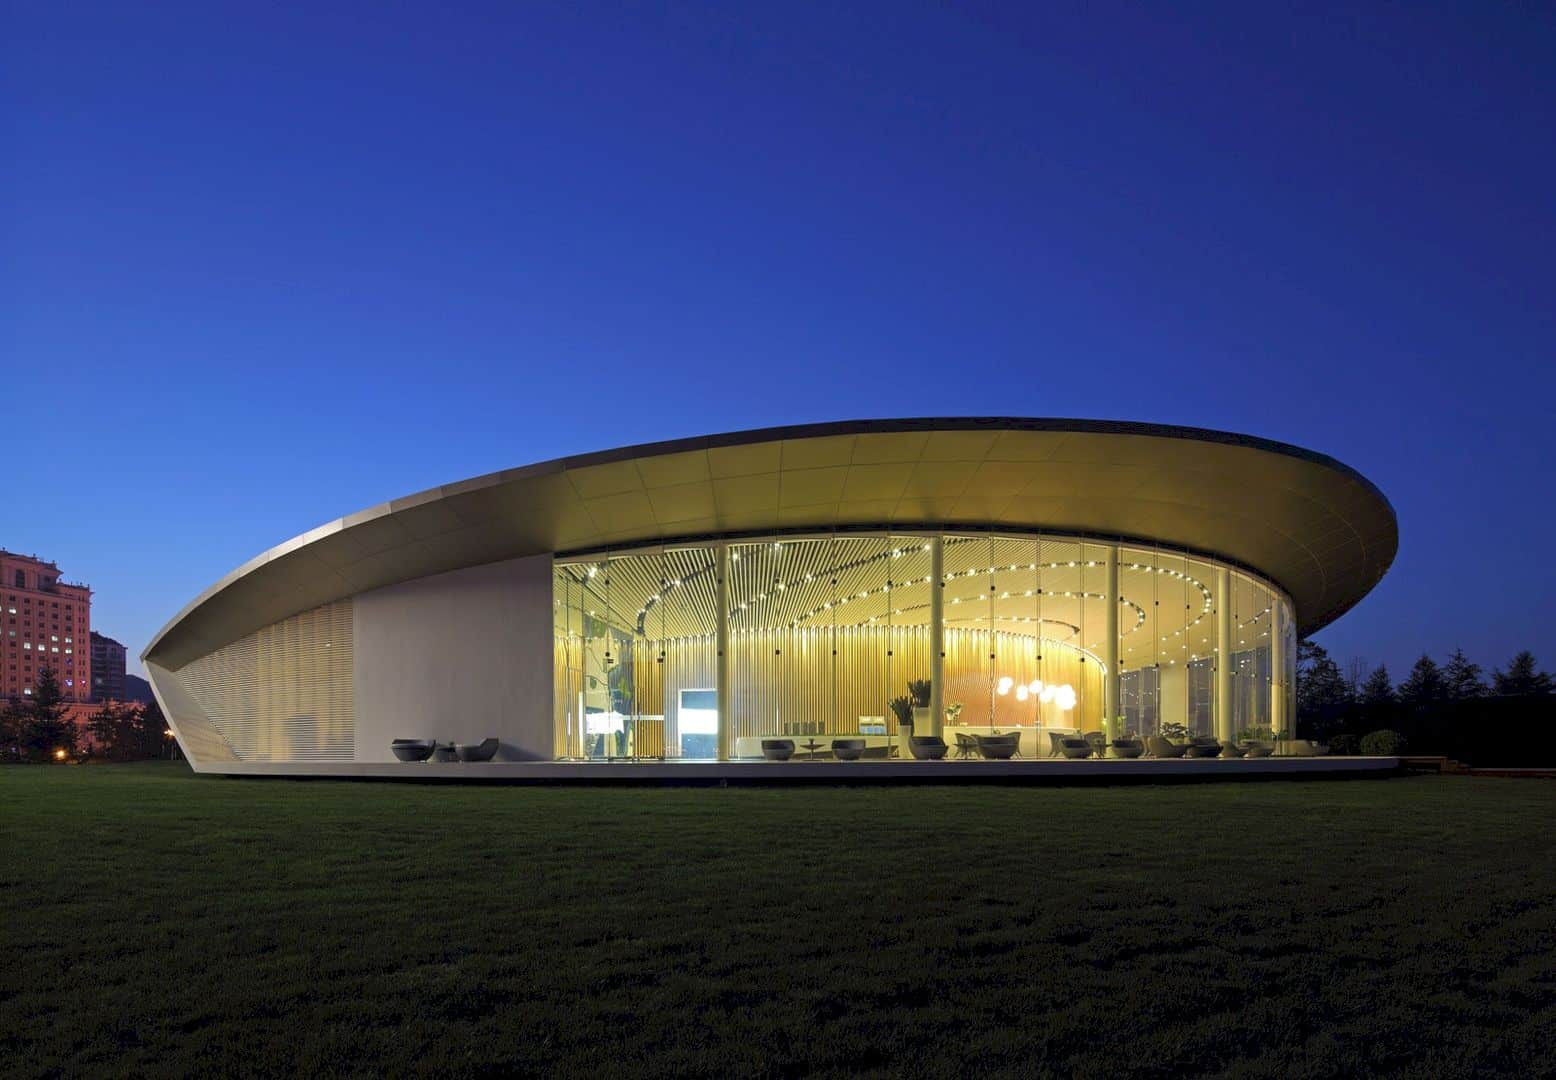 Weihai Pavilion: Modern and Big Pavilion for the Future Residents